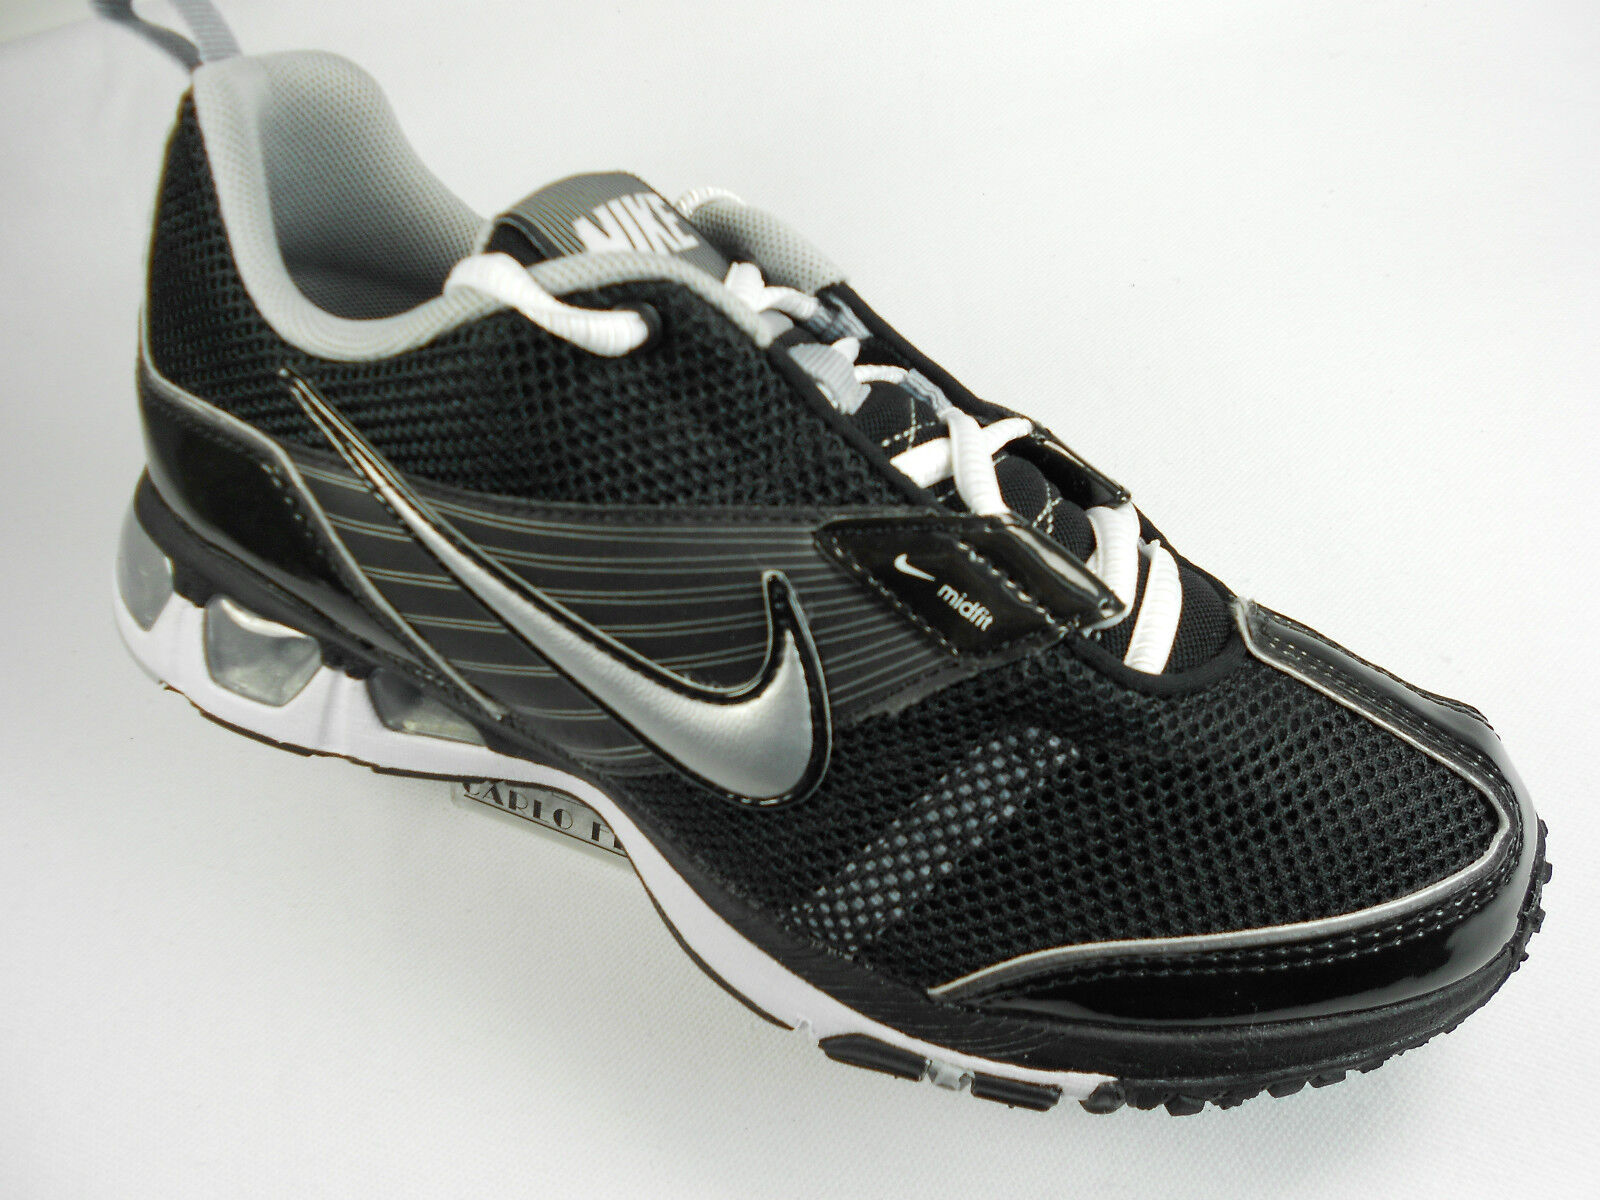 869484bce2 WOMENS NIKE AIR MAX MOTIVATE BLACK/SILVER RUNNING SHOES 076783016996 ...